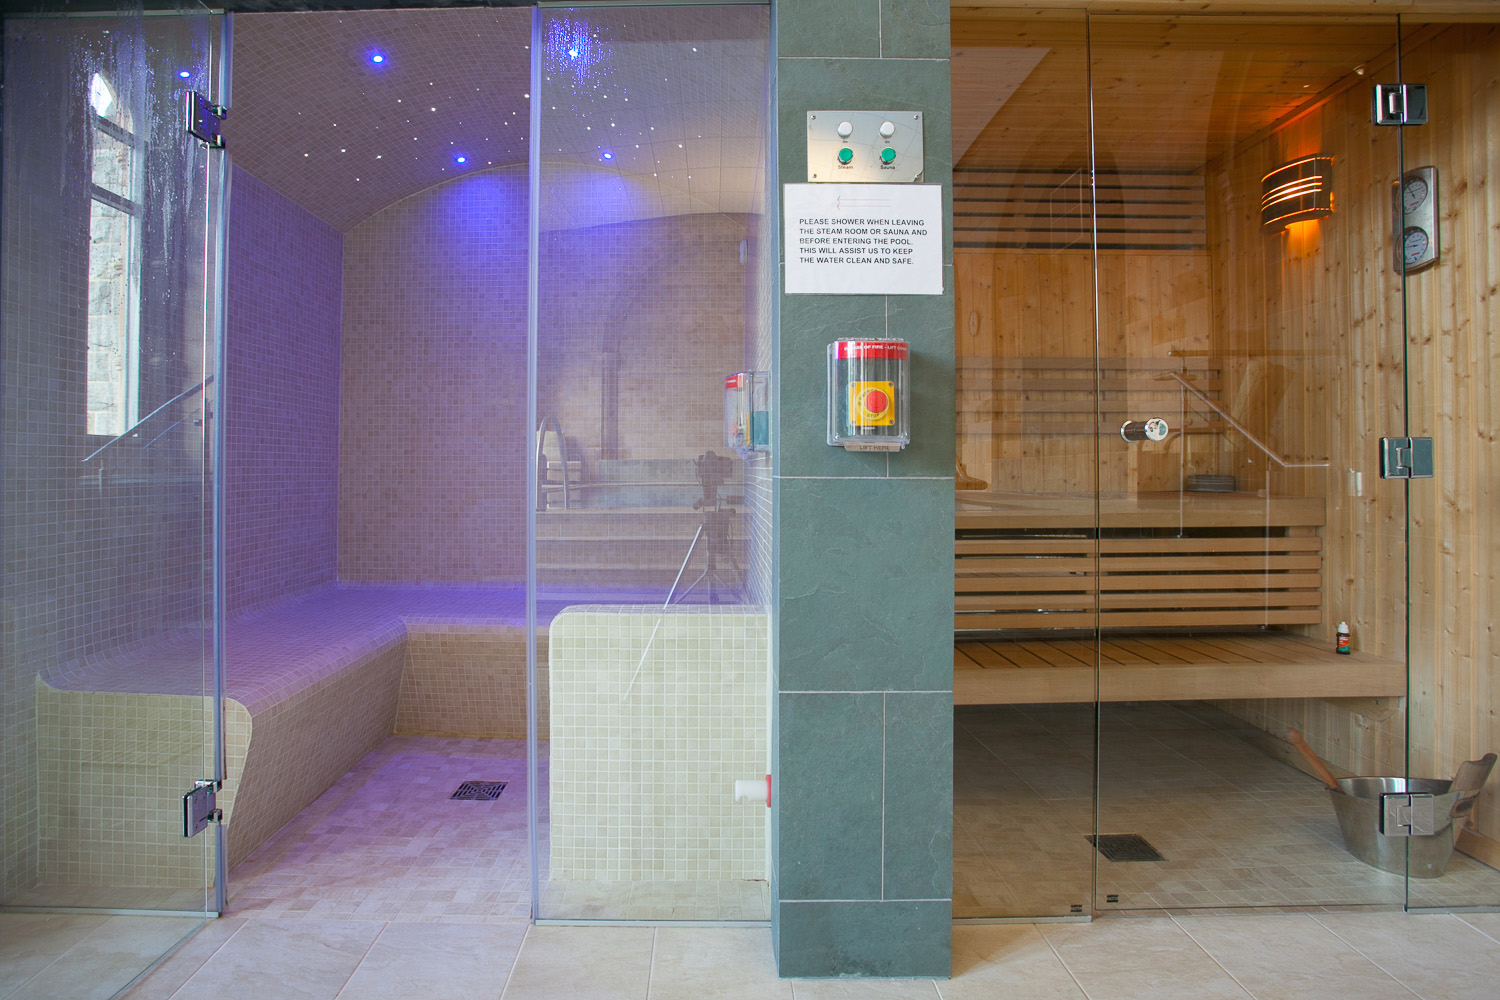 Sauna and steam room - perfect for relaxation